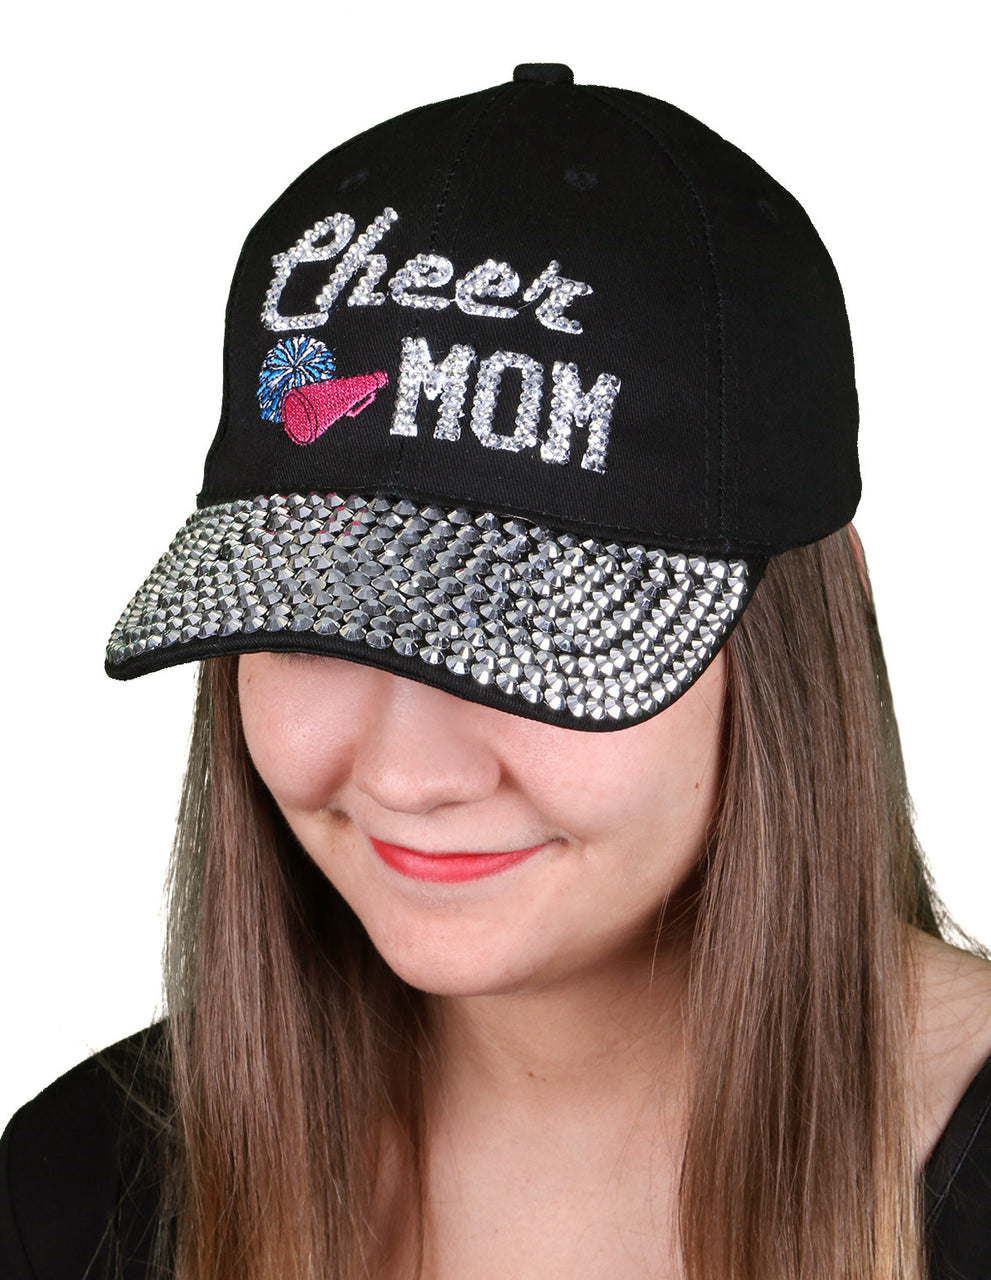 457390b6bf9 Funky junques womens silver rhinestone bill sports mom bling baseball cap  hat cheer black jpg 991x1280